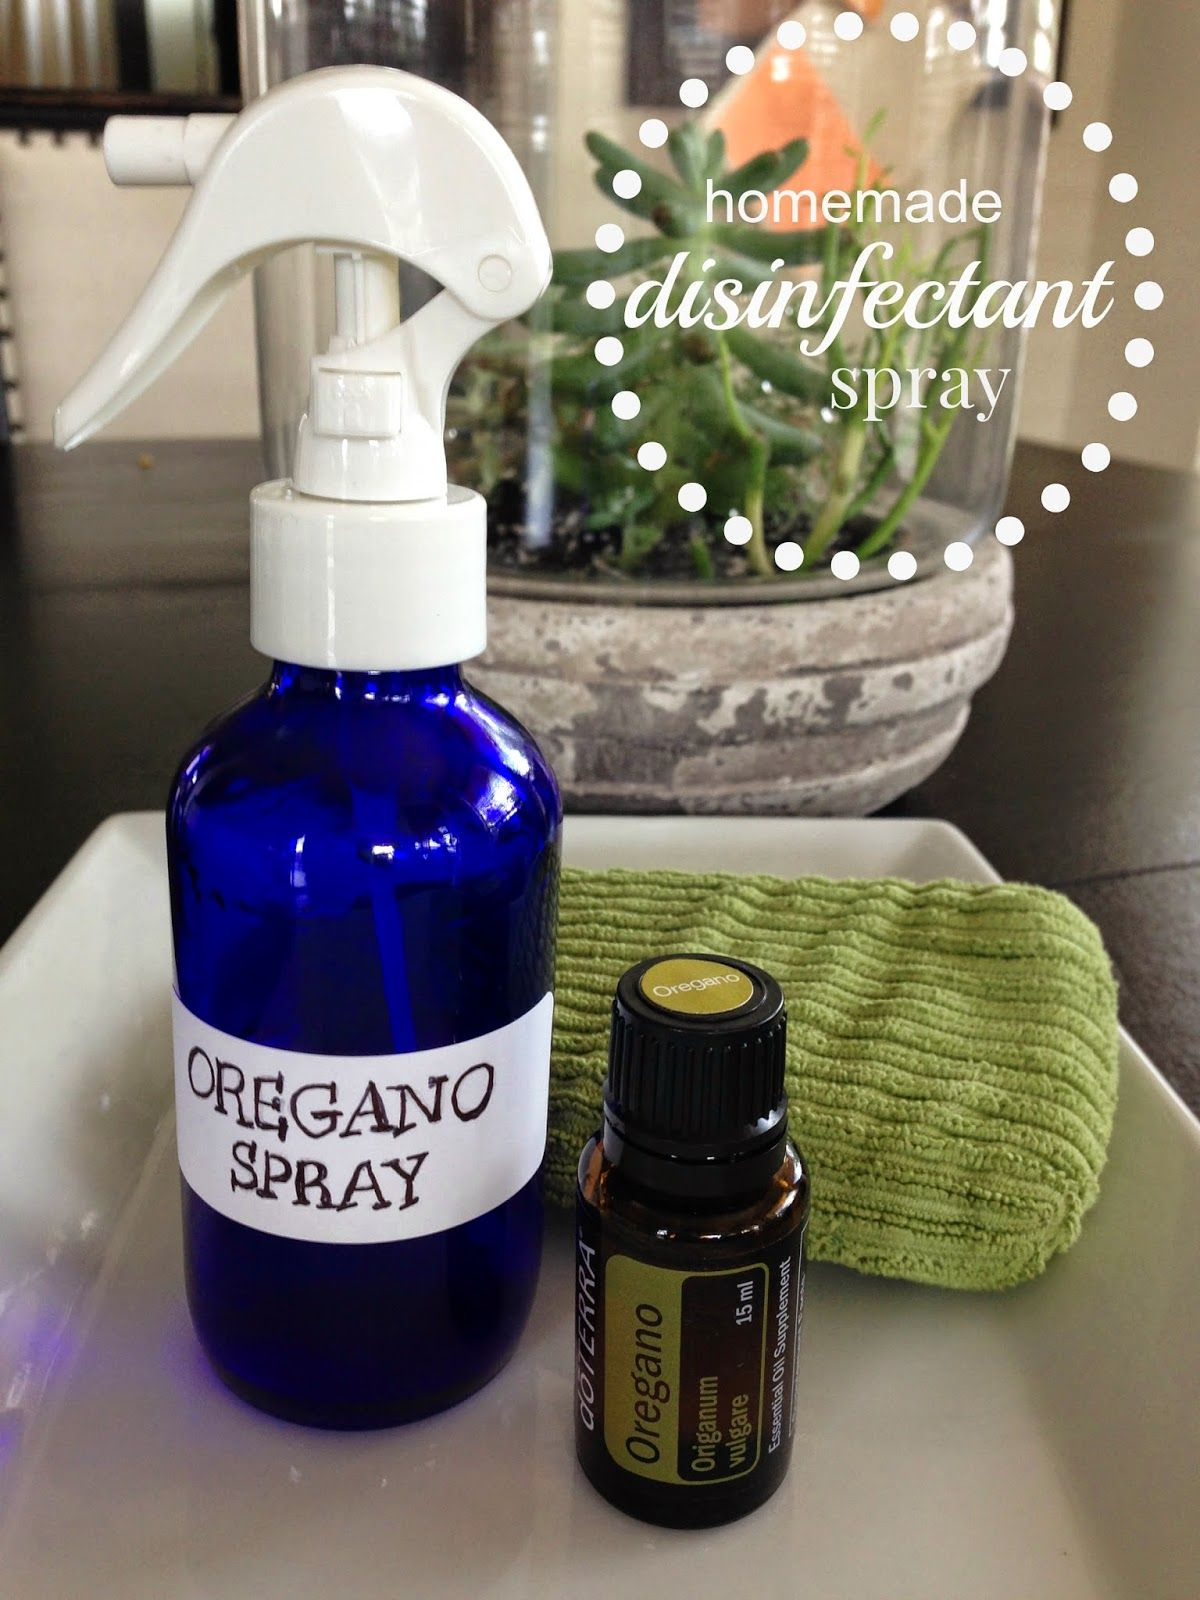 Homemade Disinfectant Spray using Oregano Essential Oil